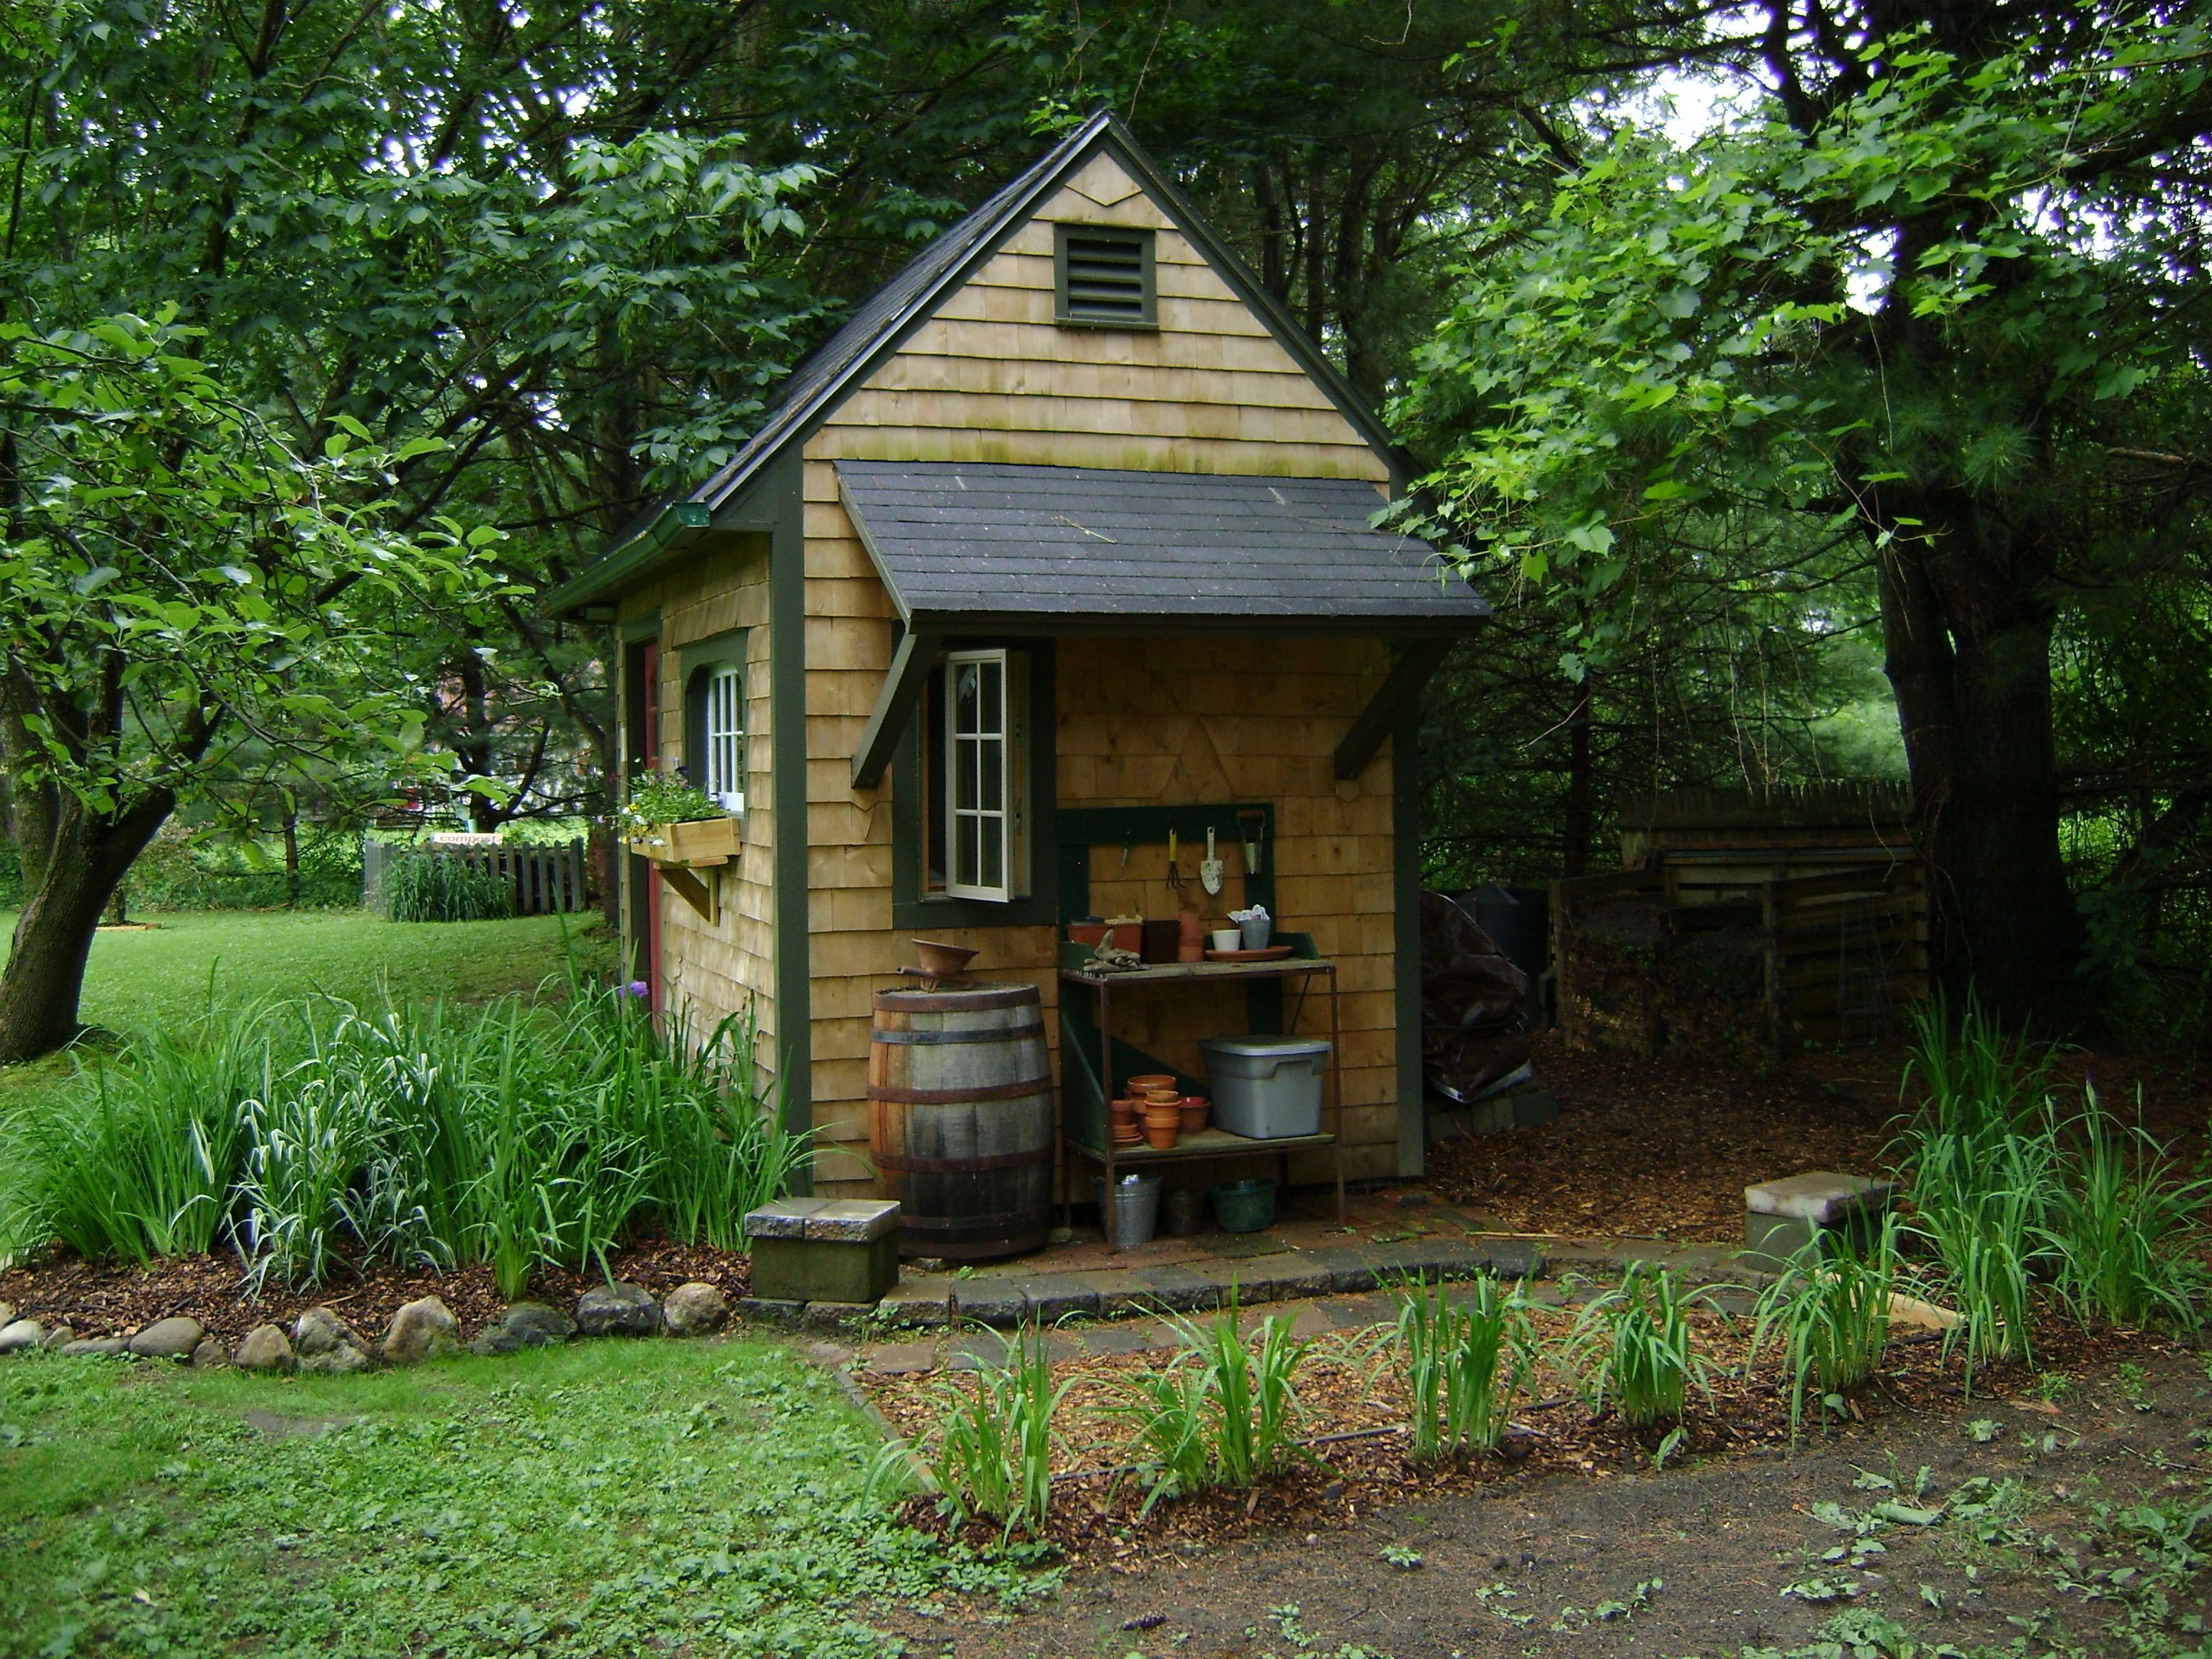 Potting Shed | Small garden pots, Shed, Small garden